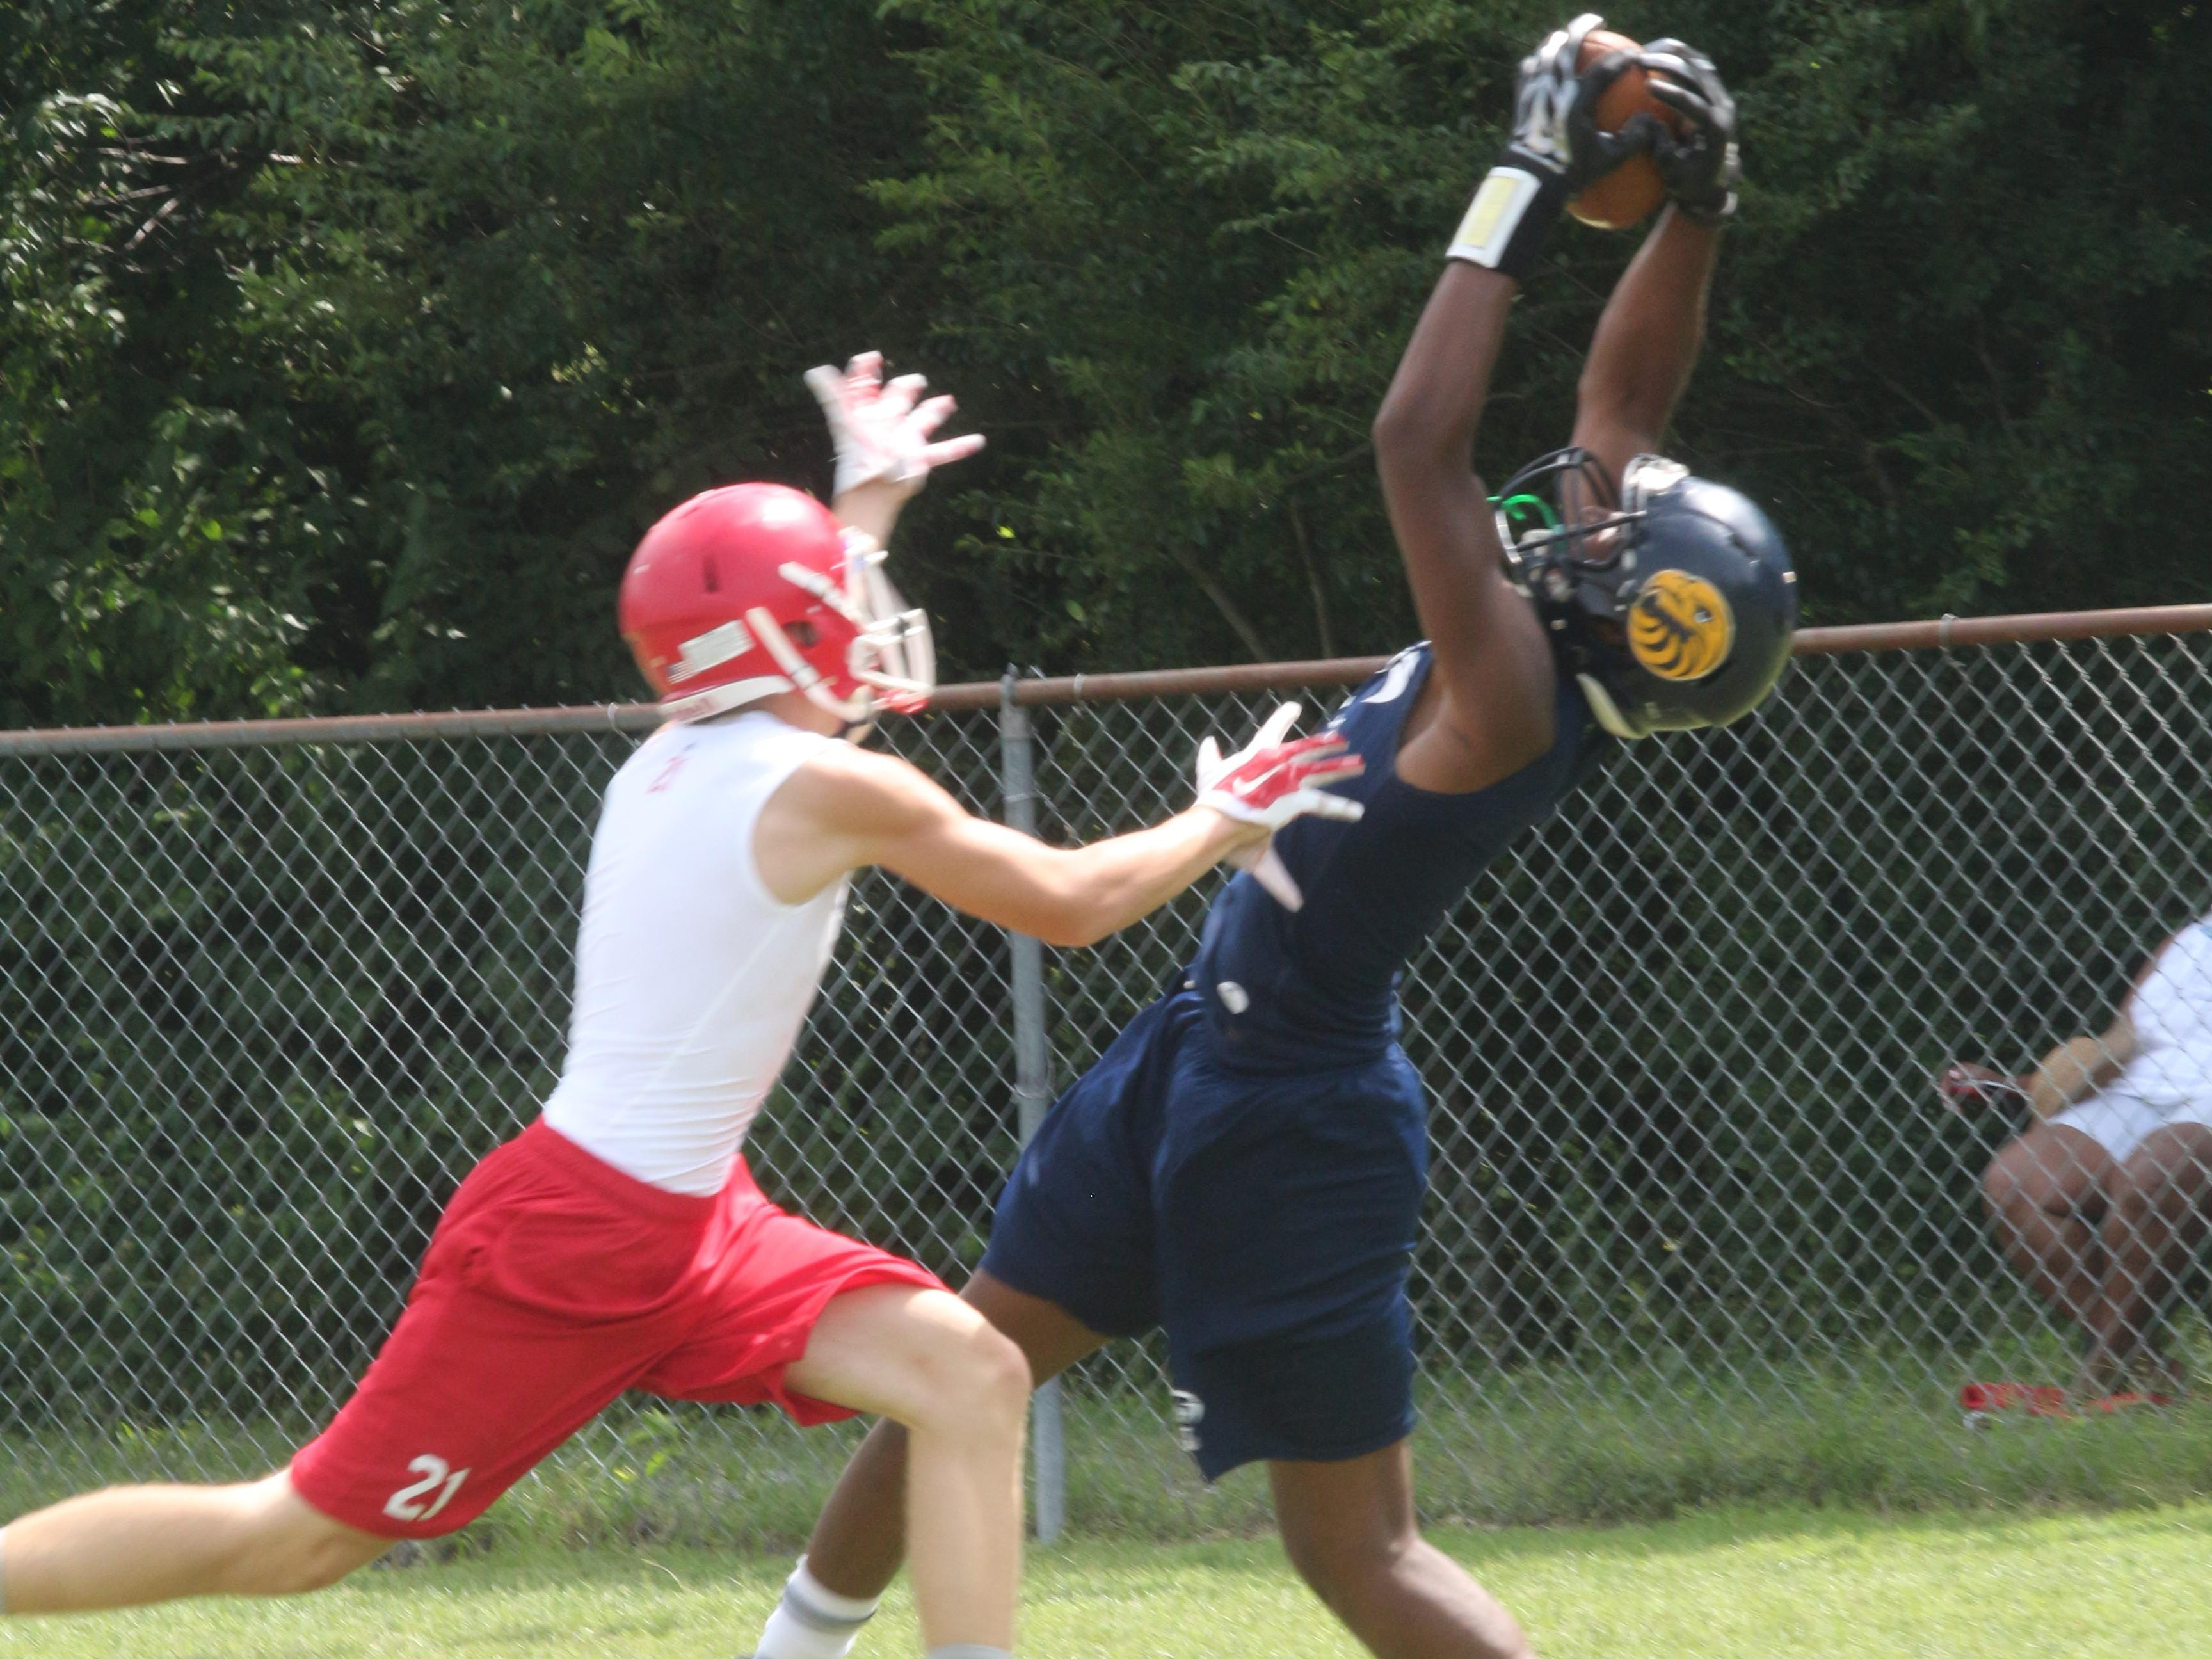 Northeast wideout William Wilcox snags a pass from quarterback Benji Burchwell against Montgomery Central during the tournament portion of the National Select 7-on-7 competition Thursday at Clarksville High School.